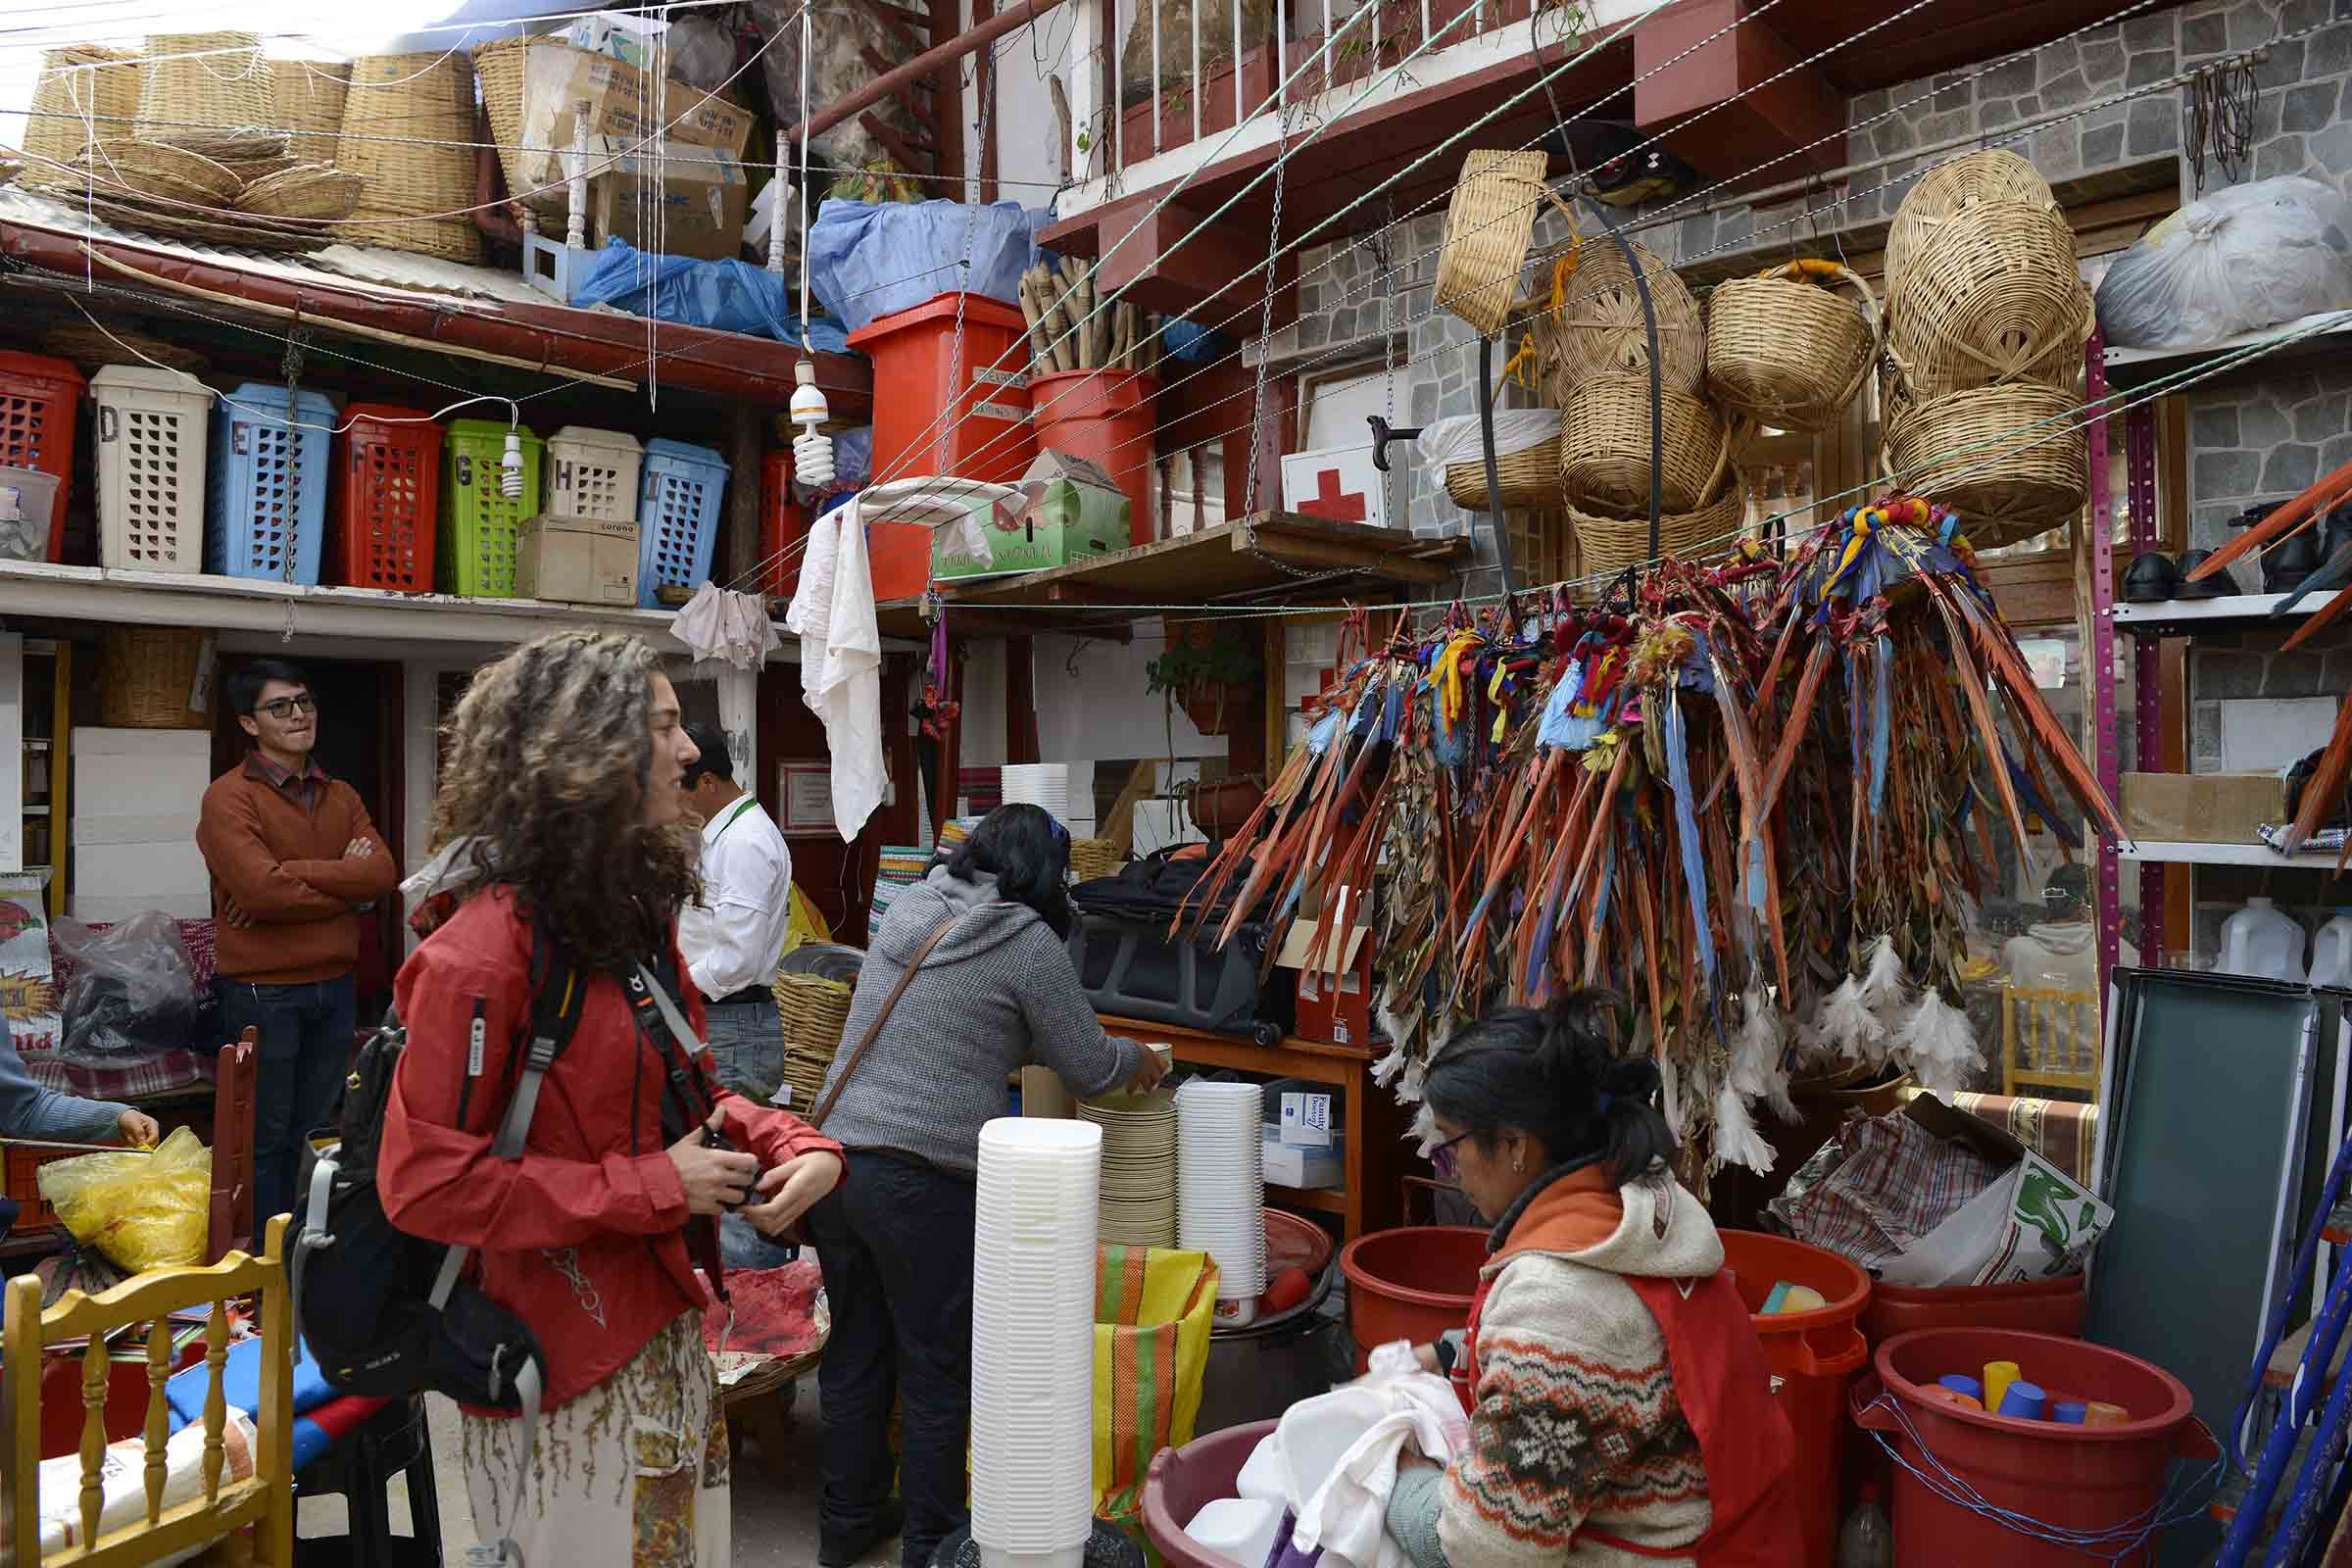 jimmy-nelson-foundation-peru-quechua-behind-the-scenes-gallery-3